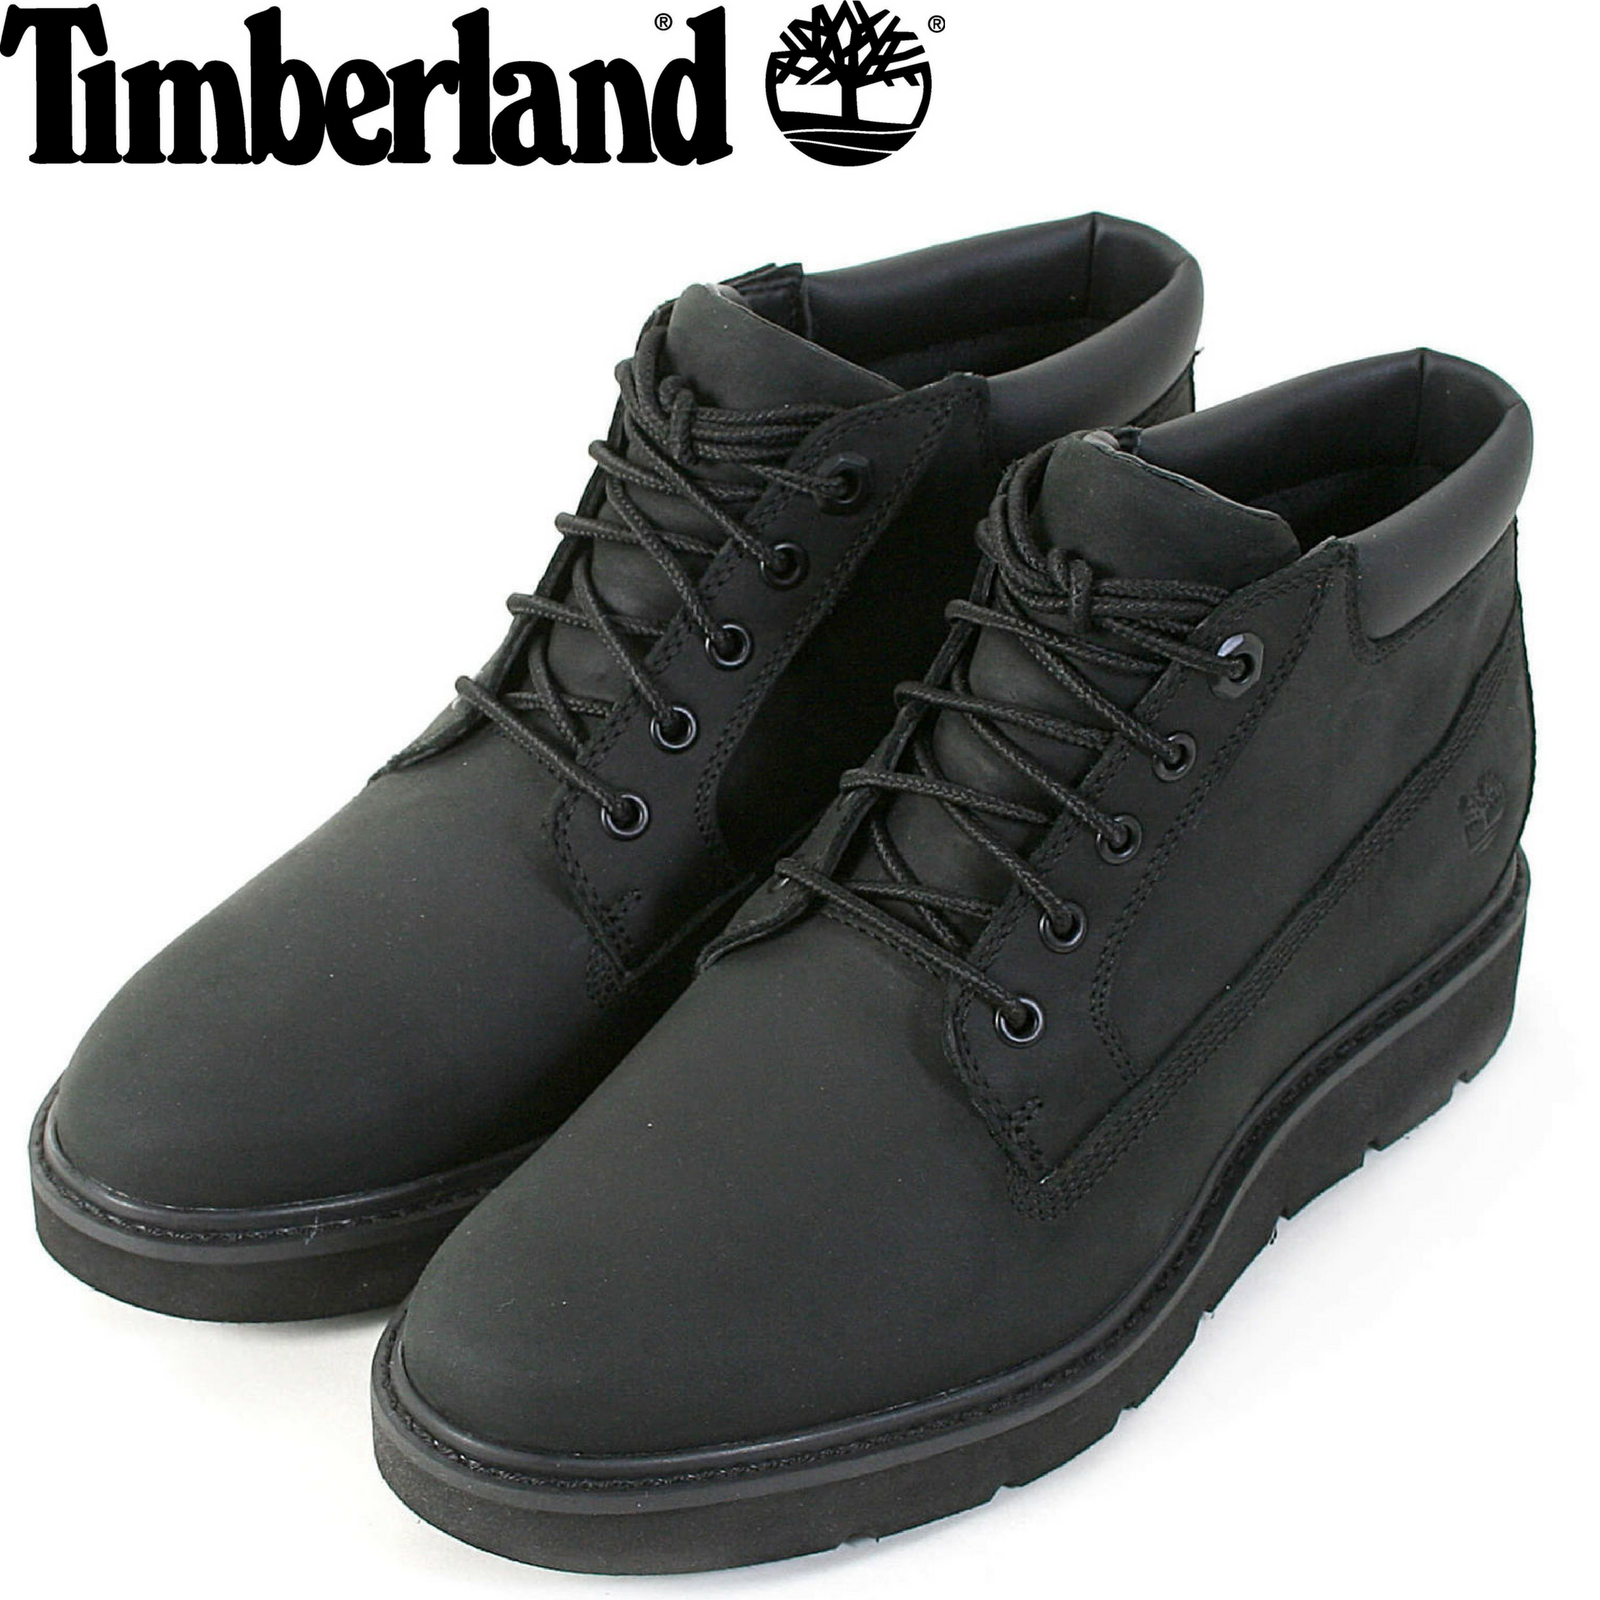 0fe111eb36e TIMBERLAND Women's Kenniston Nellie Nubuck Leather Boots Shoes Ladies High  Top